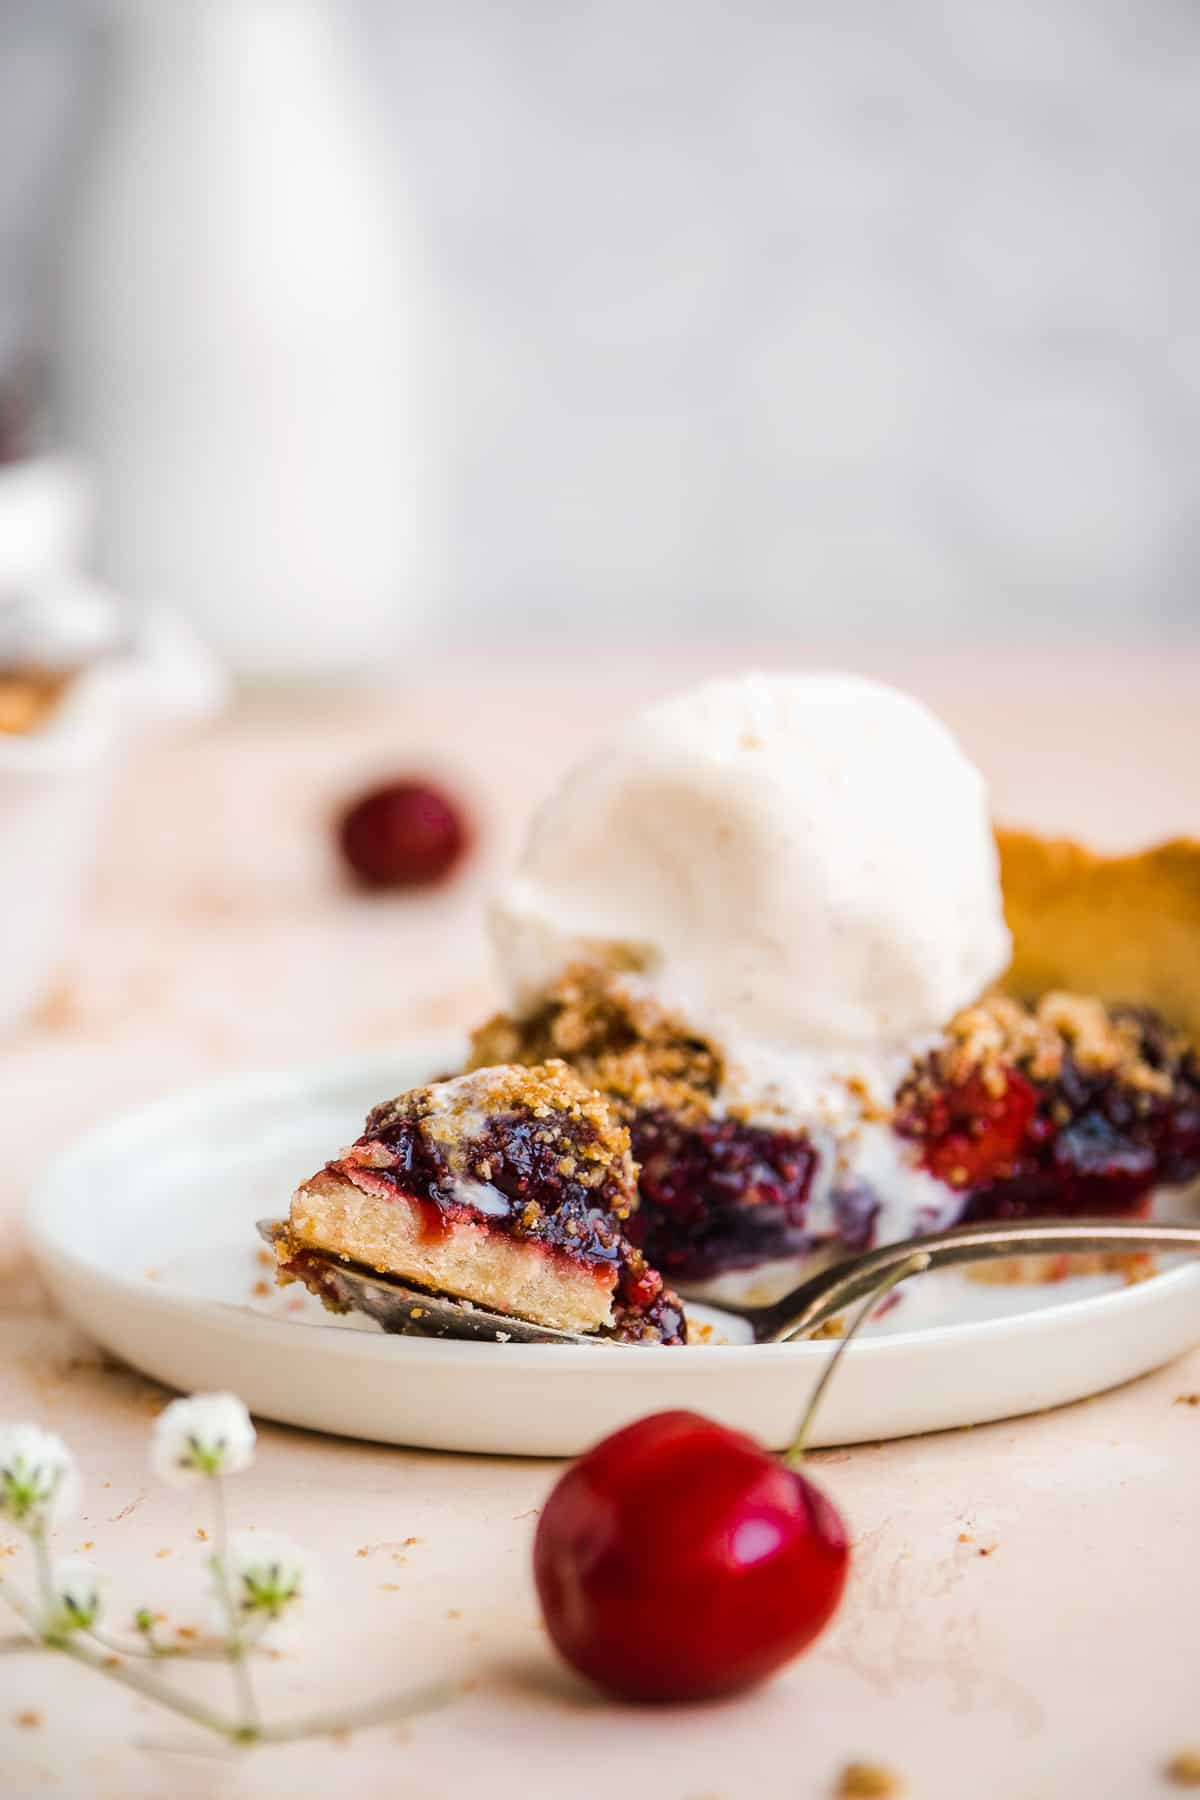 Slice of cherry pie on a white plate with a fork taking a bite.